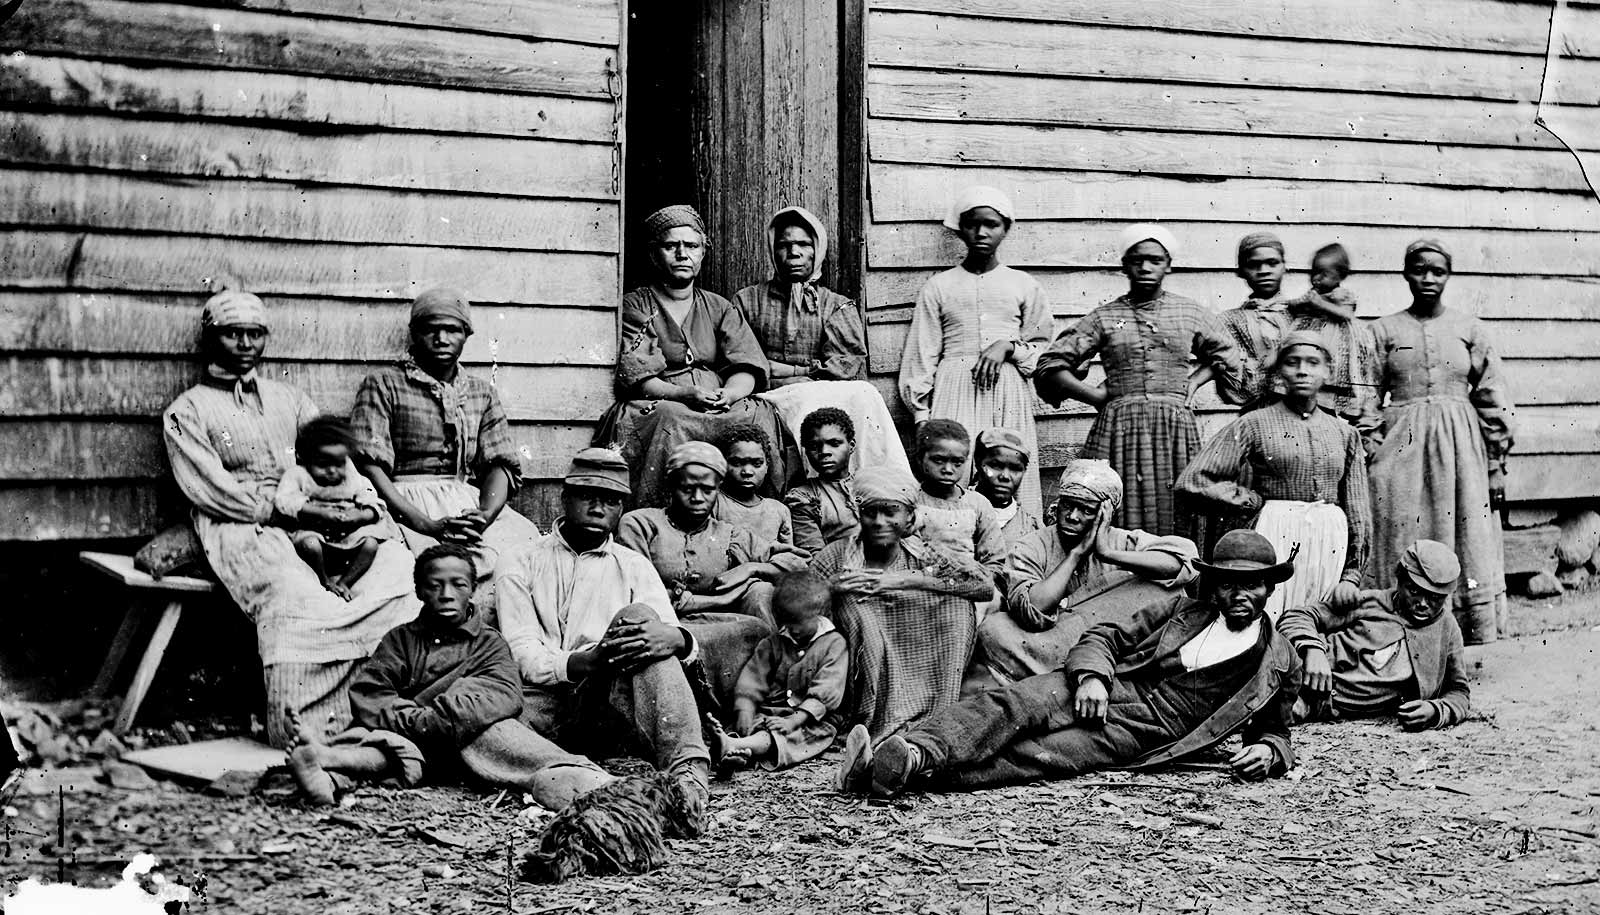 African Americans forged free lives in Civil War refugee camps - Futurity